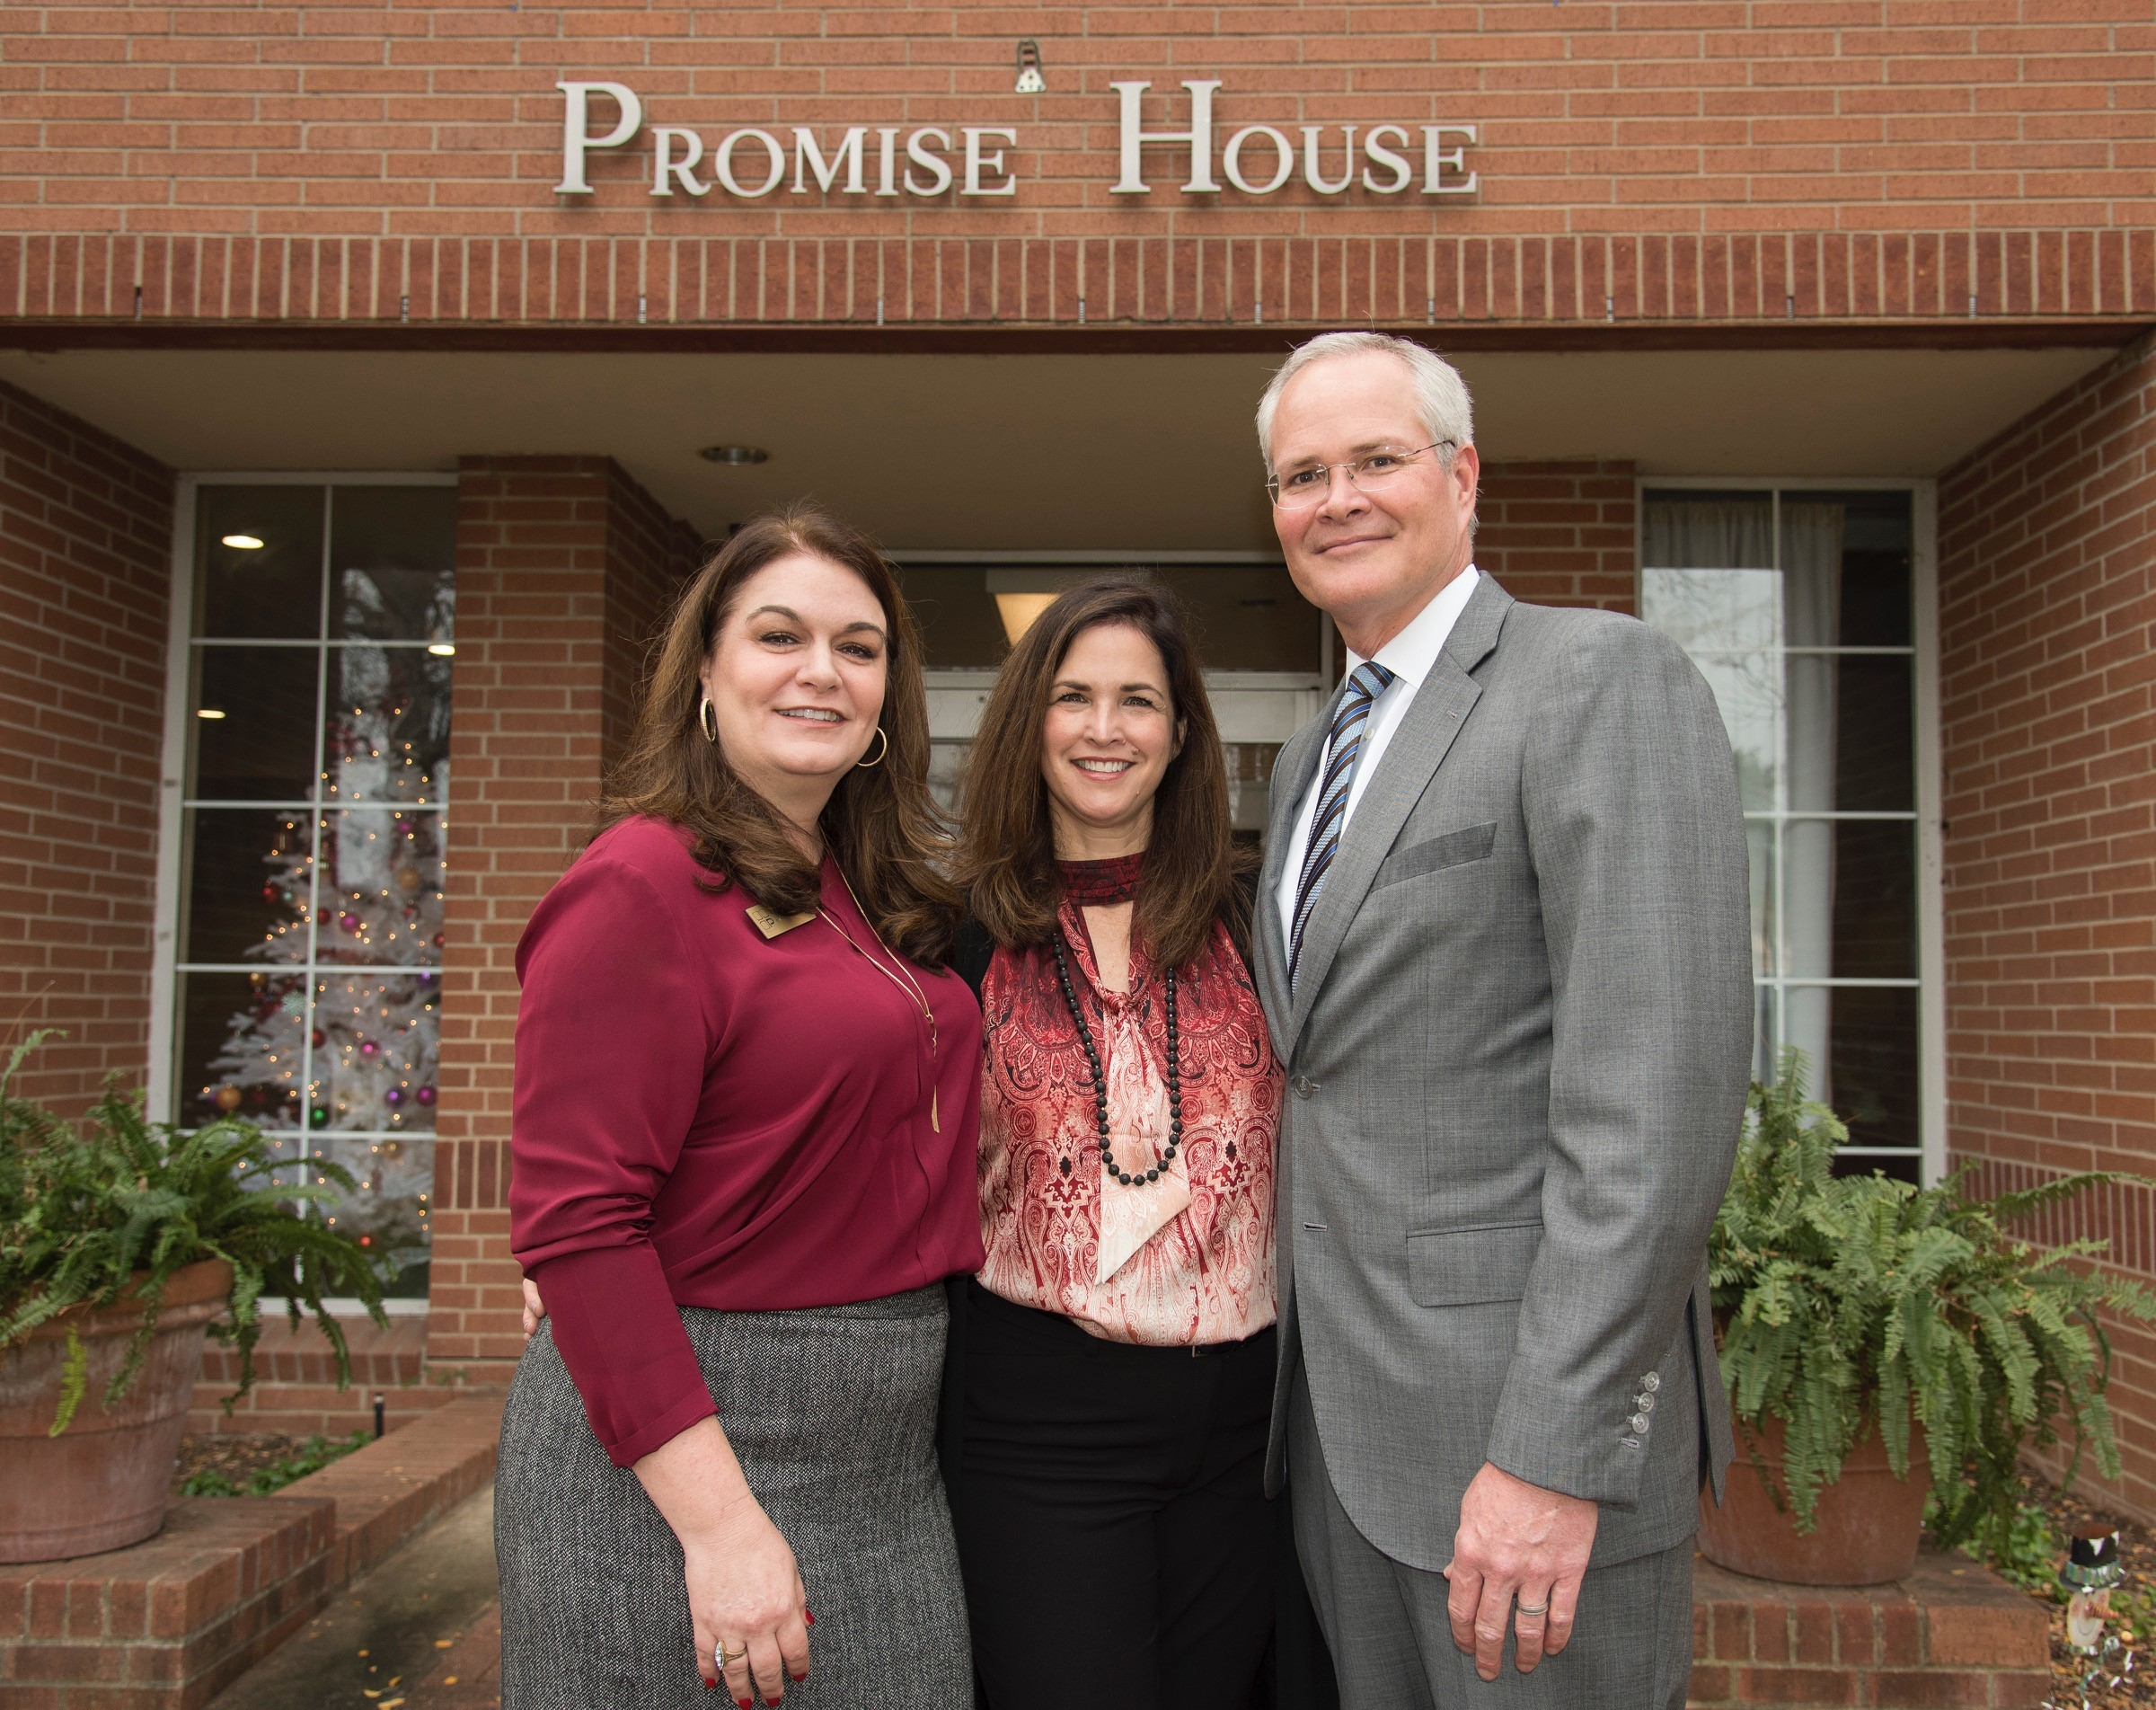 ExxonMobil Gift Supports Promise House's Homeless Youth